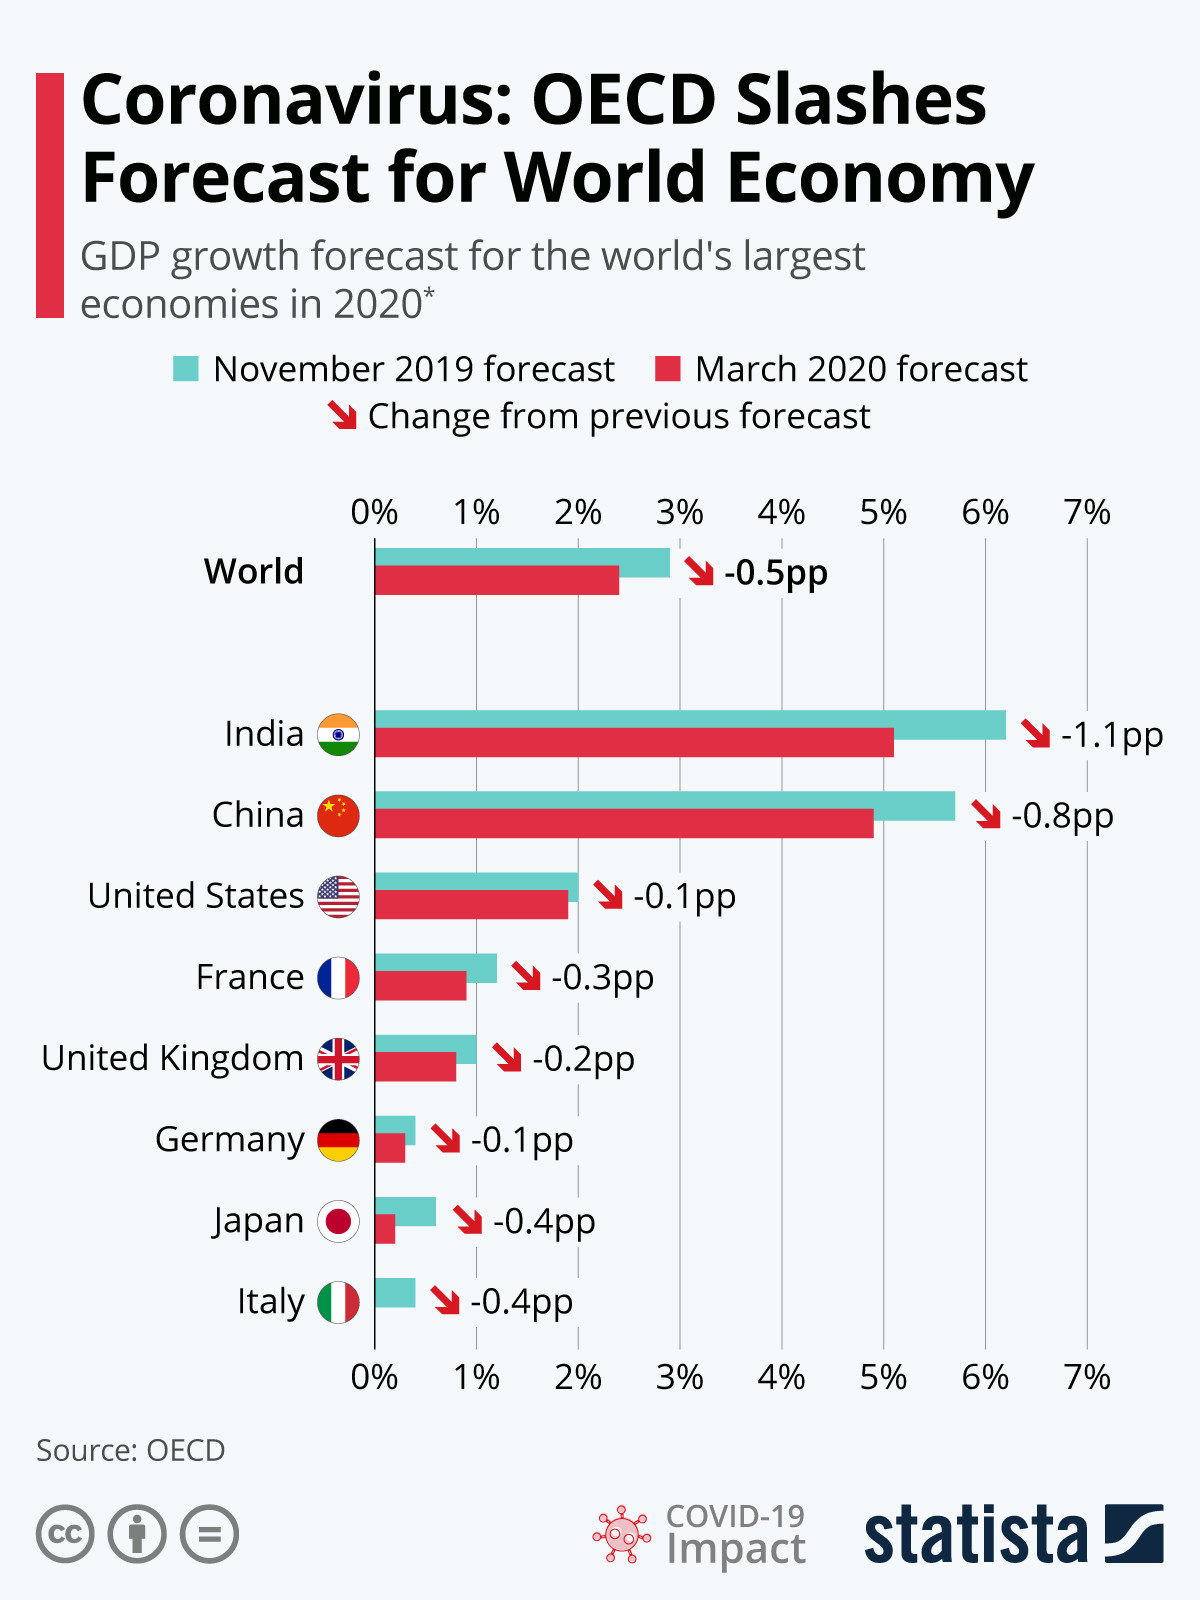 The OECD's forecast for the global economy